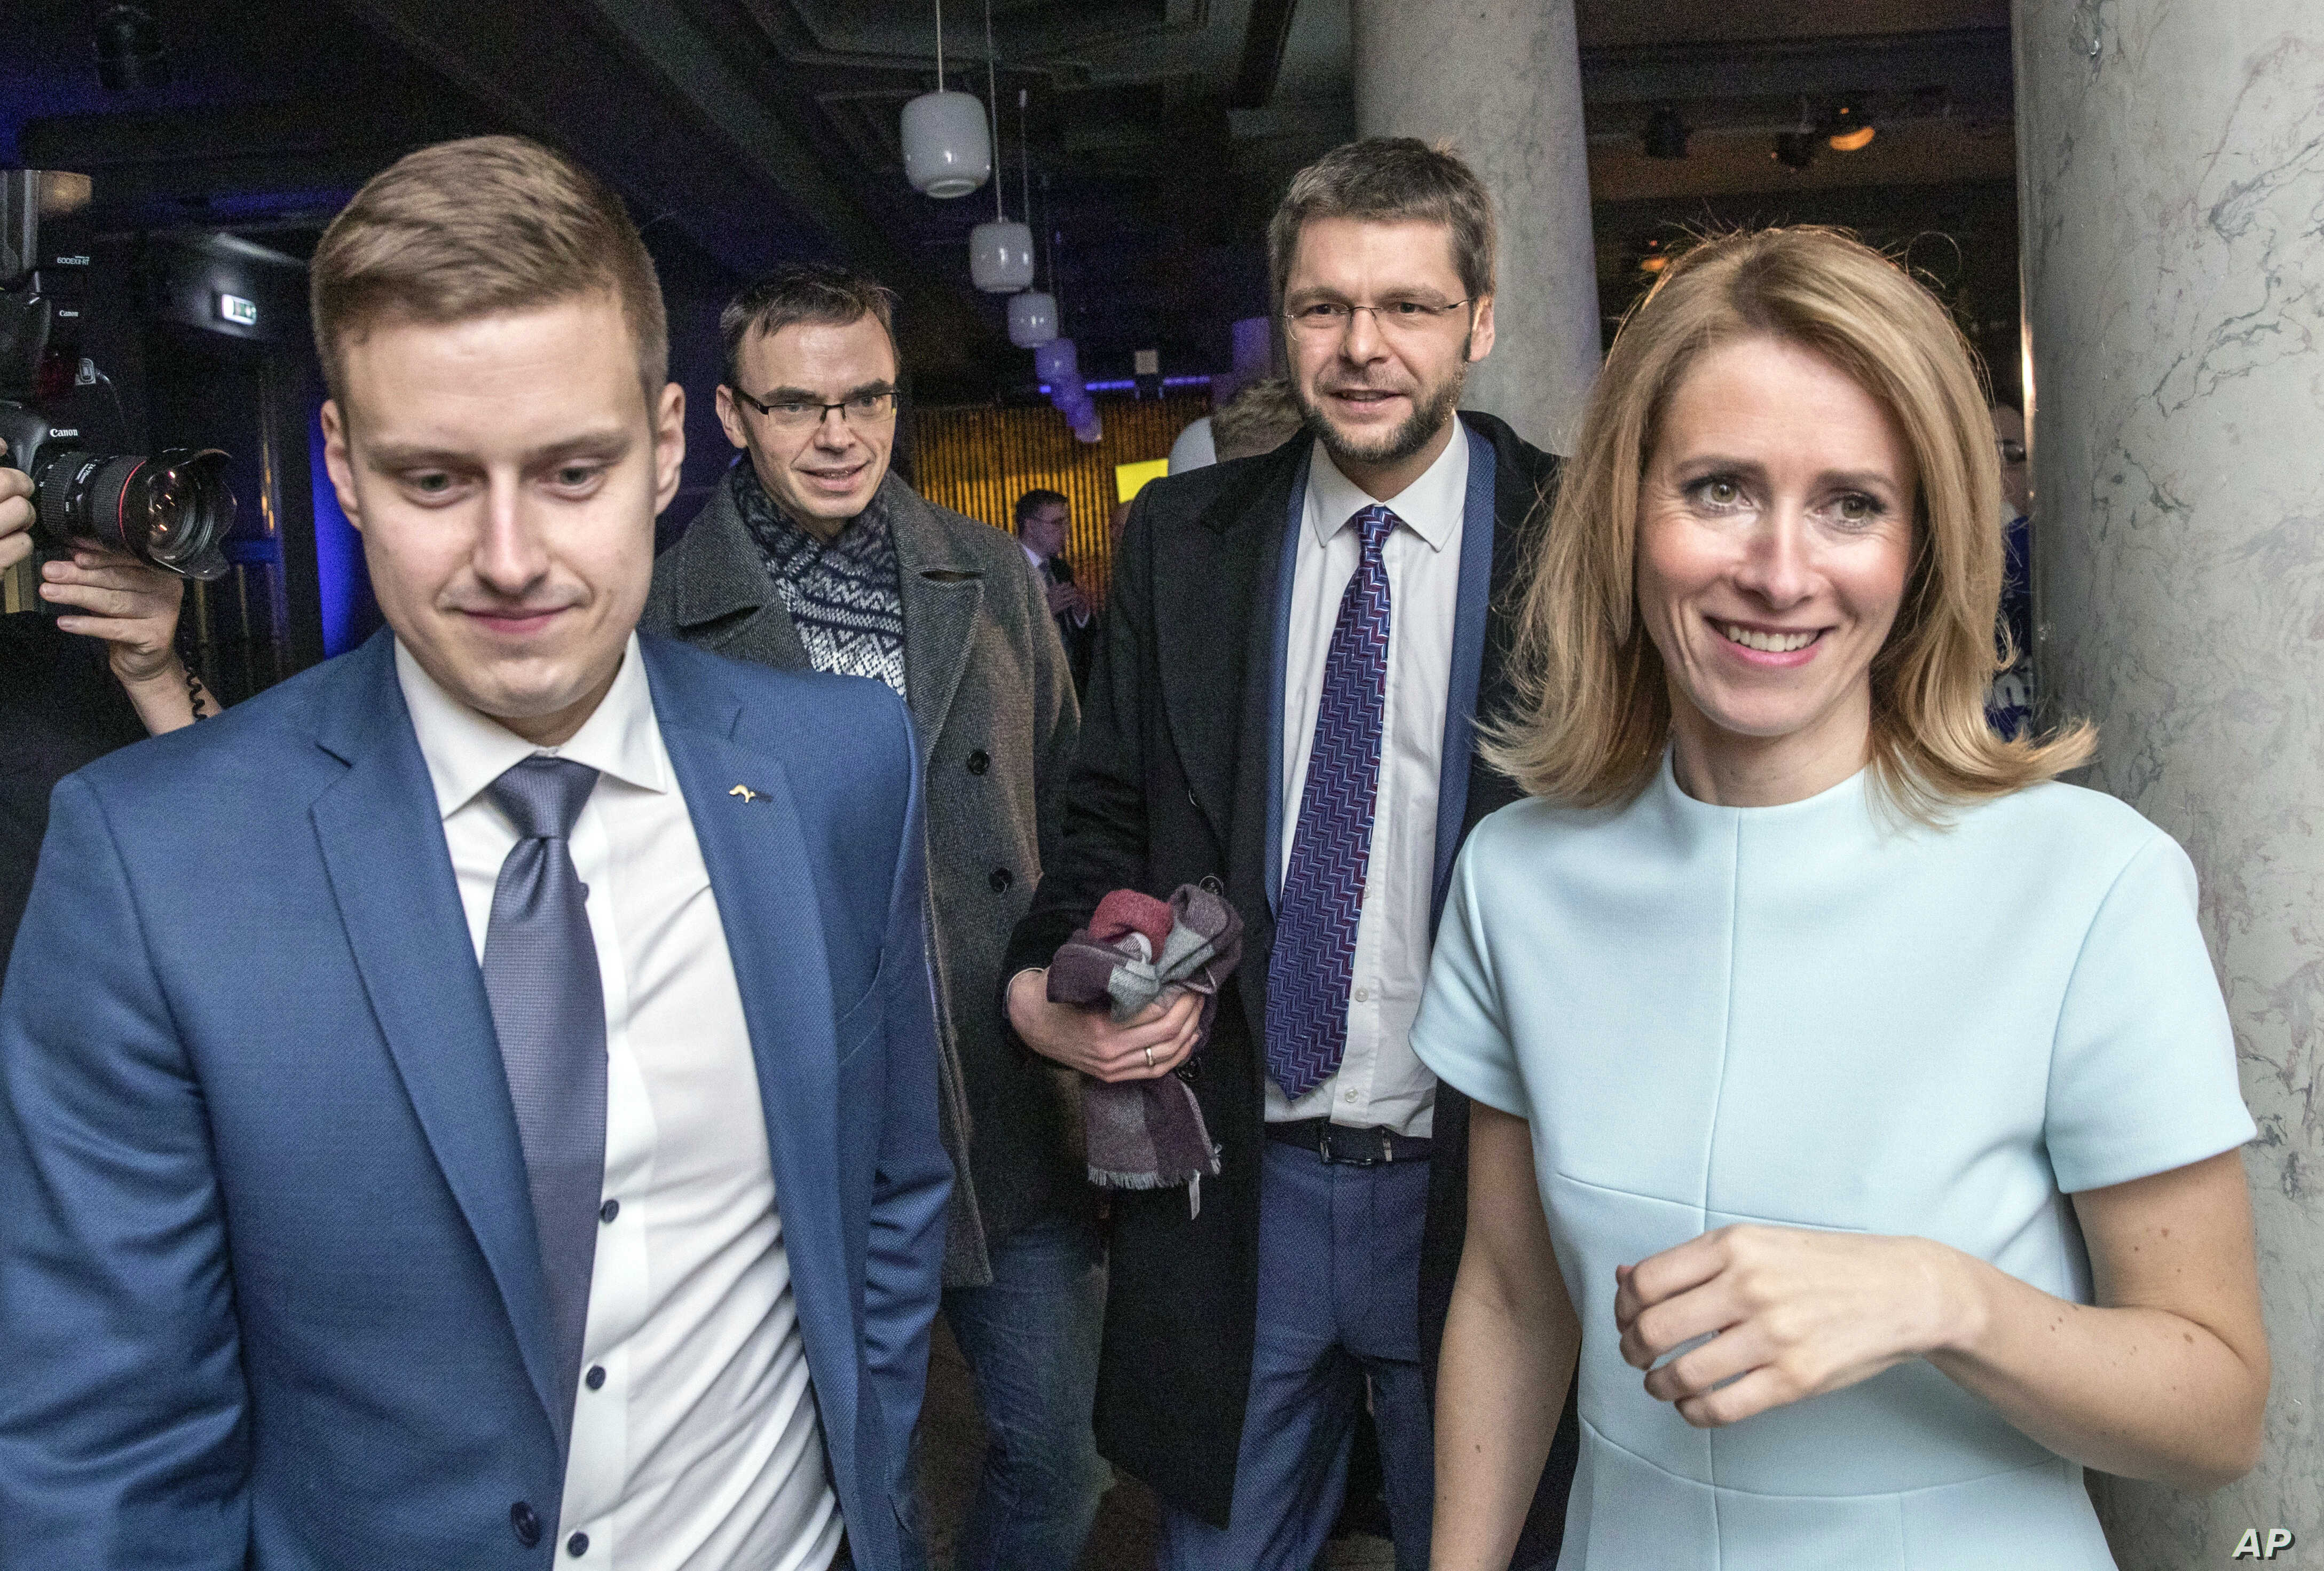 From the left: Reform party Party's secretary-general Erkki Keldo, Sven Mikser from Social Democrates, Jevgeni Ossinovski, leader of Social Democrates and Kaja Kallas pose for a photo after parliamentary elections in Tallinn, Estonia, early March 4, ...